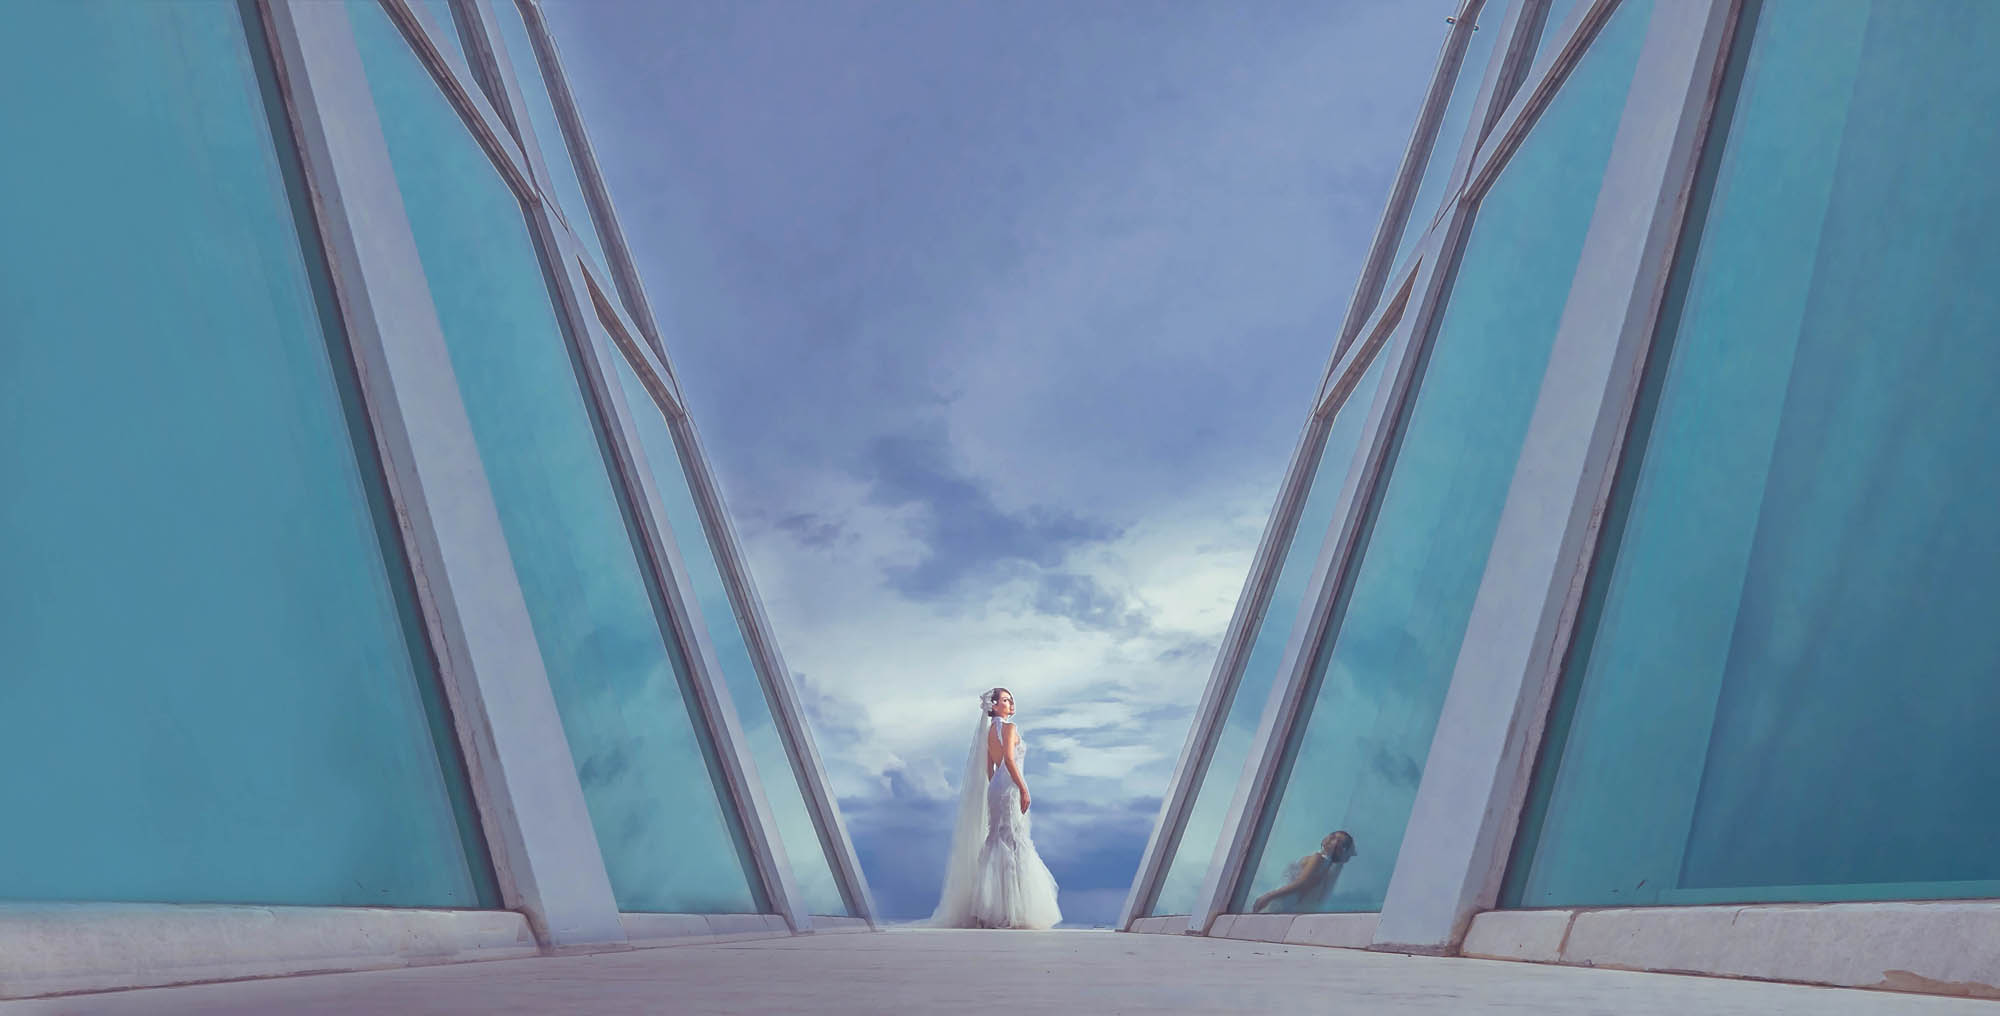 Bride standing between towering glass windows, by CM Leung